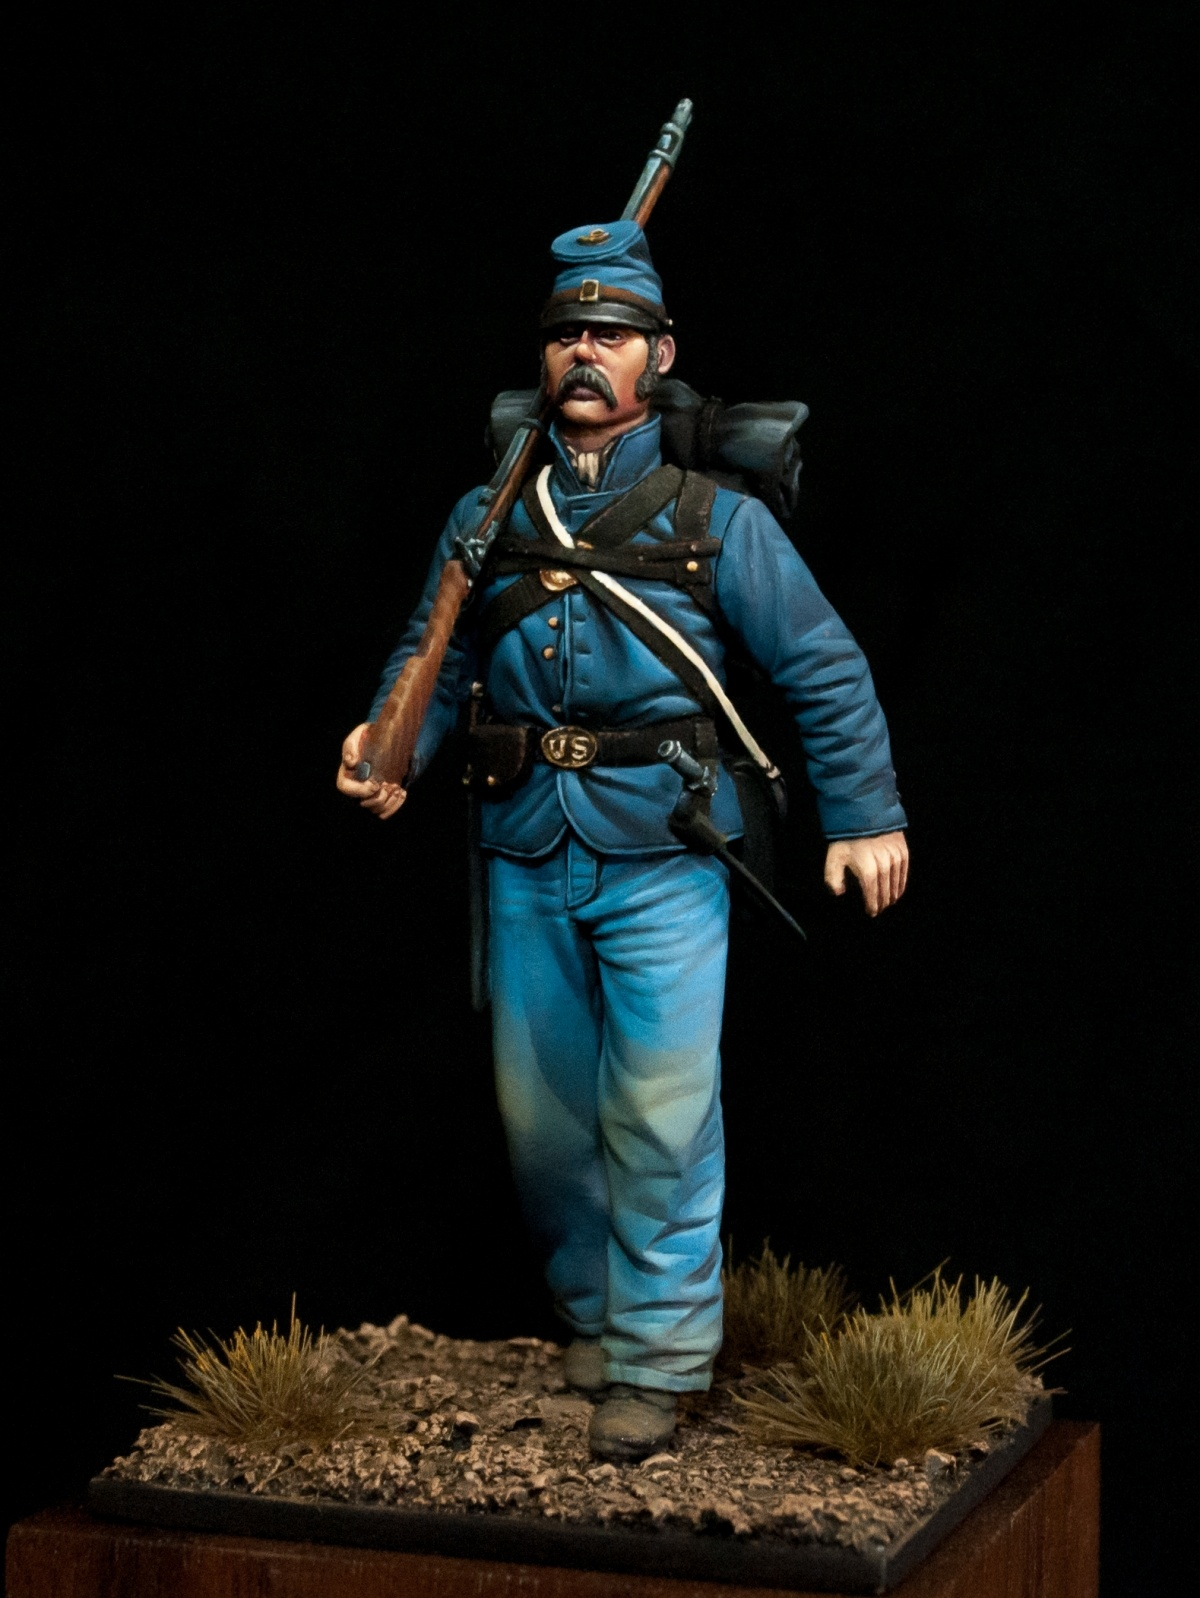 Union Infantryman by Alessandro · Putty&Paint